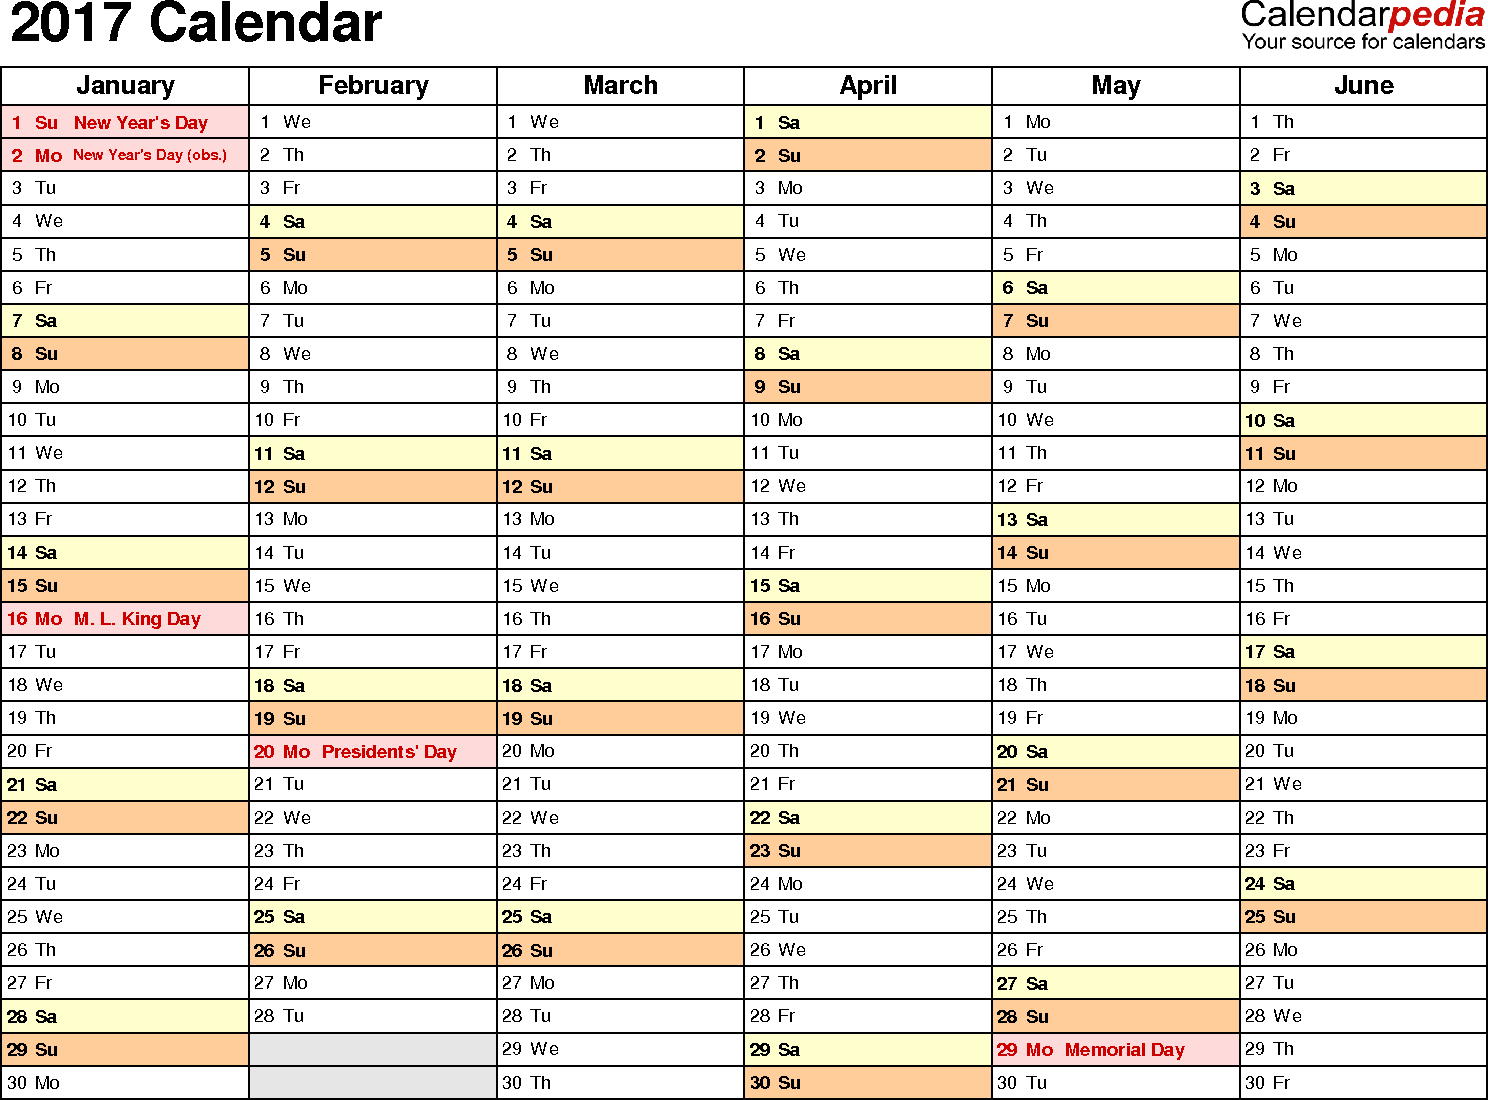 Ediblewildsus  Seductive  Calendar  Download  Free Printable Excel Templates Xls With Extraordinary Template   Calendar For Excel Months Horizontally  Pages Landscape Orientation With Alluring Vlookup Excel Vba Also Payroll Spreadsheet Template Excel In Addition Profit And Loss Account Excel And Excel Margin Formula As Well As Ocr Table To Excel Additionally Excel For I Pad From Calendarpediacom With Ediblewildsus  Extraordinary  Calendar  Download  Free Printable Excel Templates Xls With Alluring Template   Calendar For Excel Months Horizontally  Pages Landscape Orientation And Seductive Vlookup Excel Vba Also Payroll Spreadsheet Template Excel In Addition Profit And Loss Account Excel From Calendarpediacom